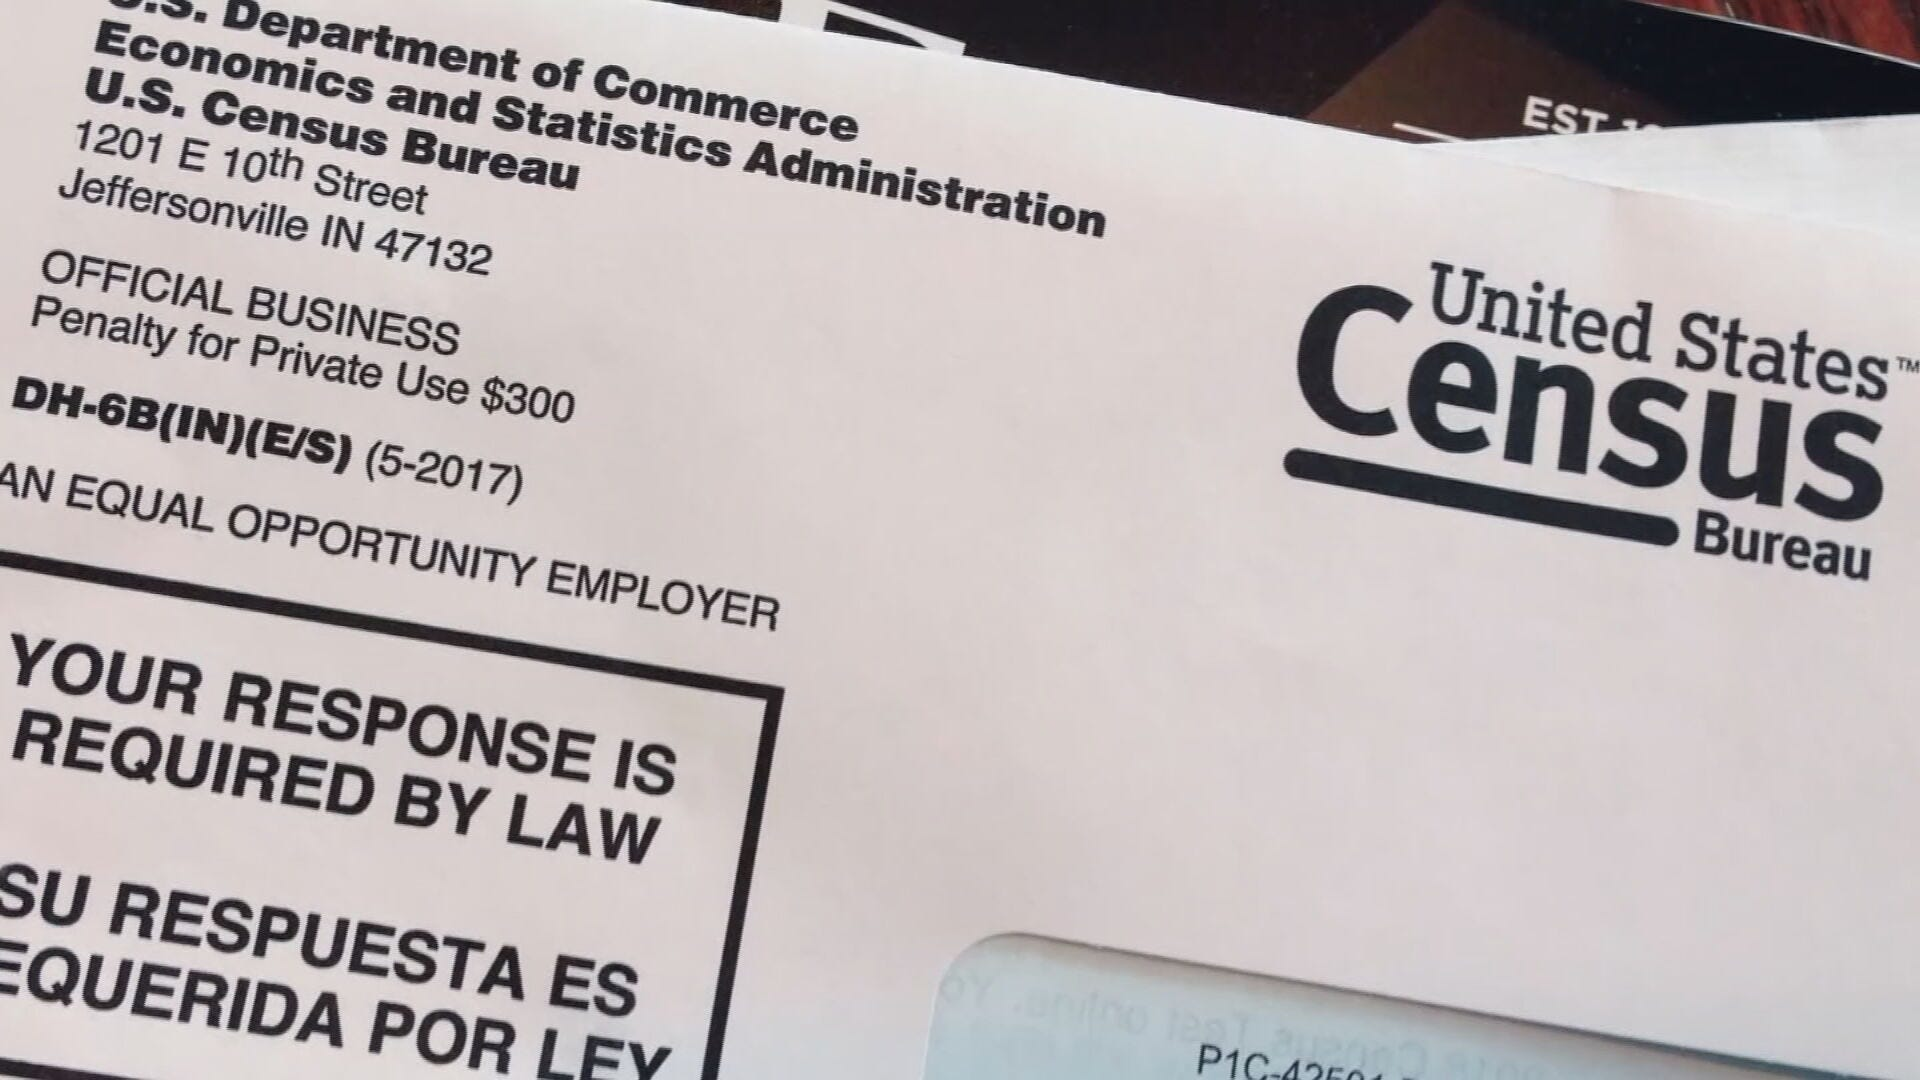 Cities, Counties Gear Up For 2020 Census Without Federal Funding